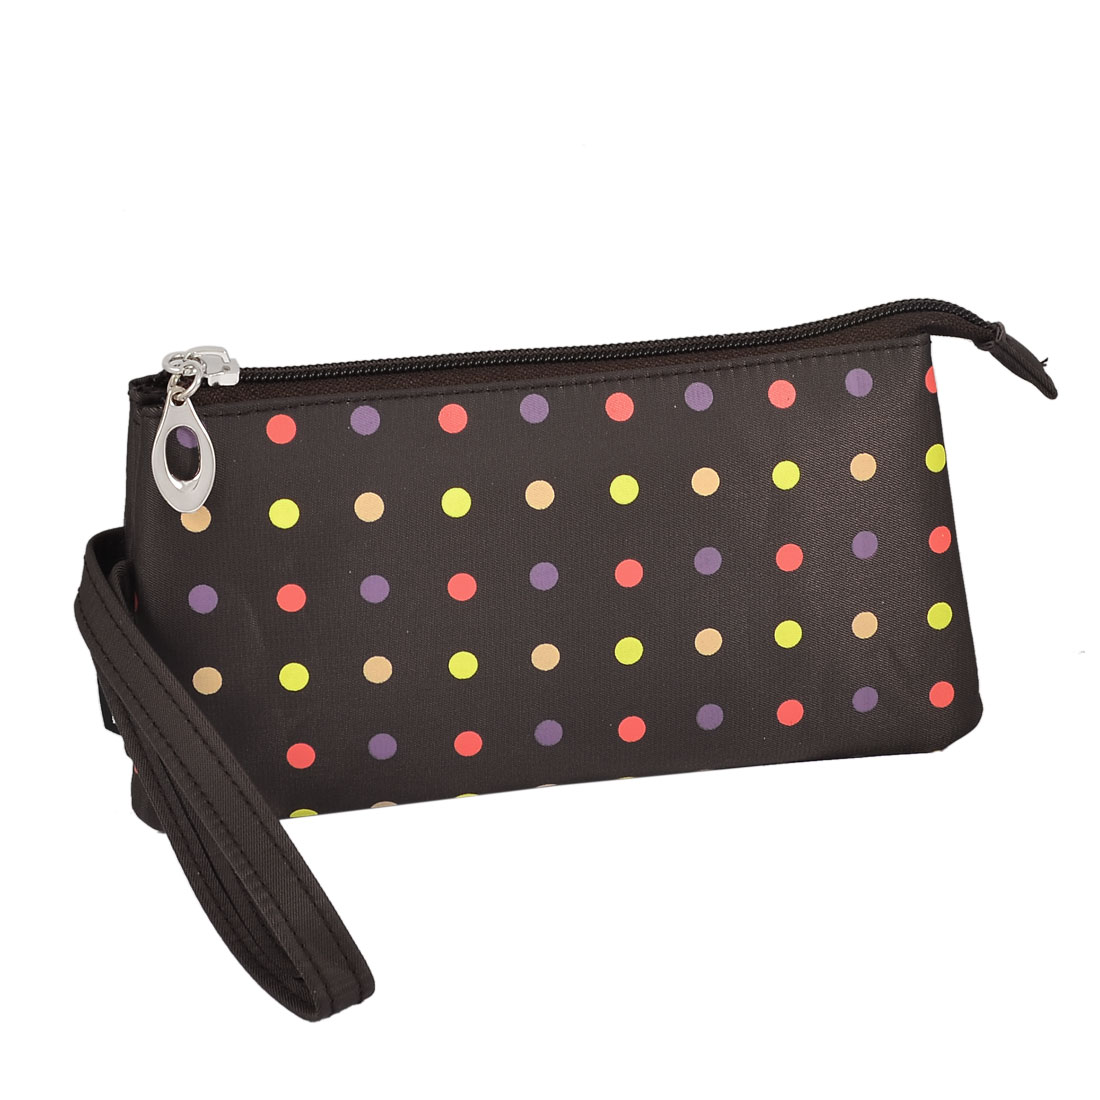 Travel Polka Dot 3 Compartment Wristlet Cosmetic Bag Pouch Brown w Mirror